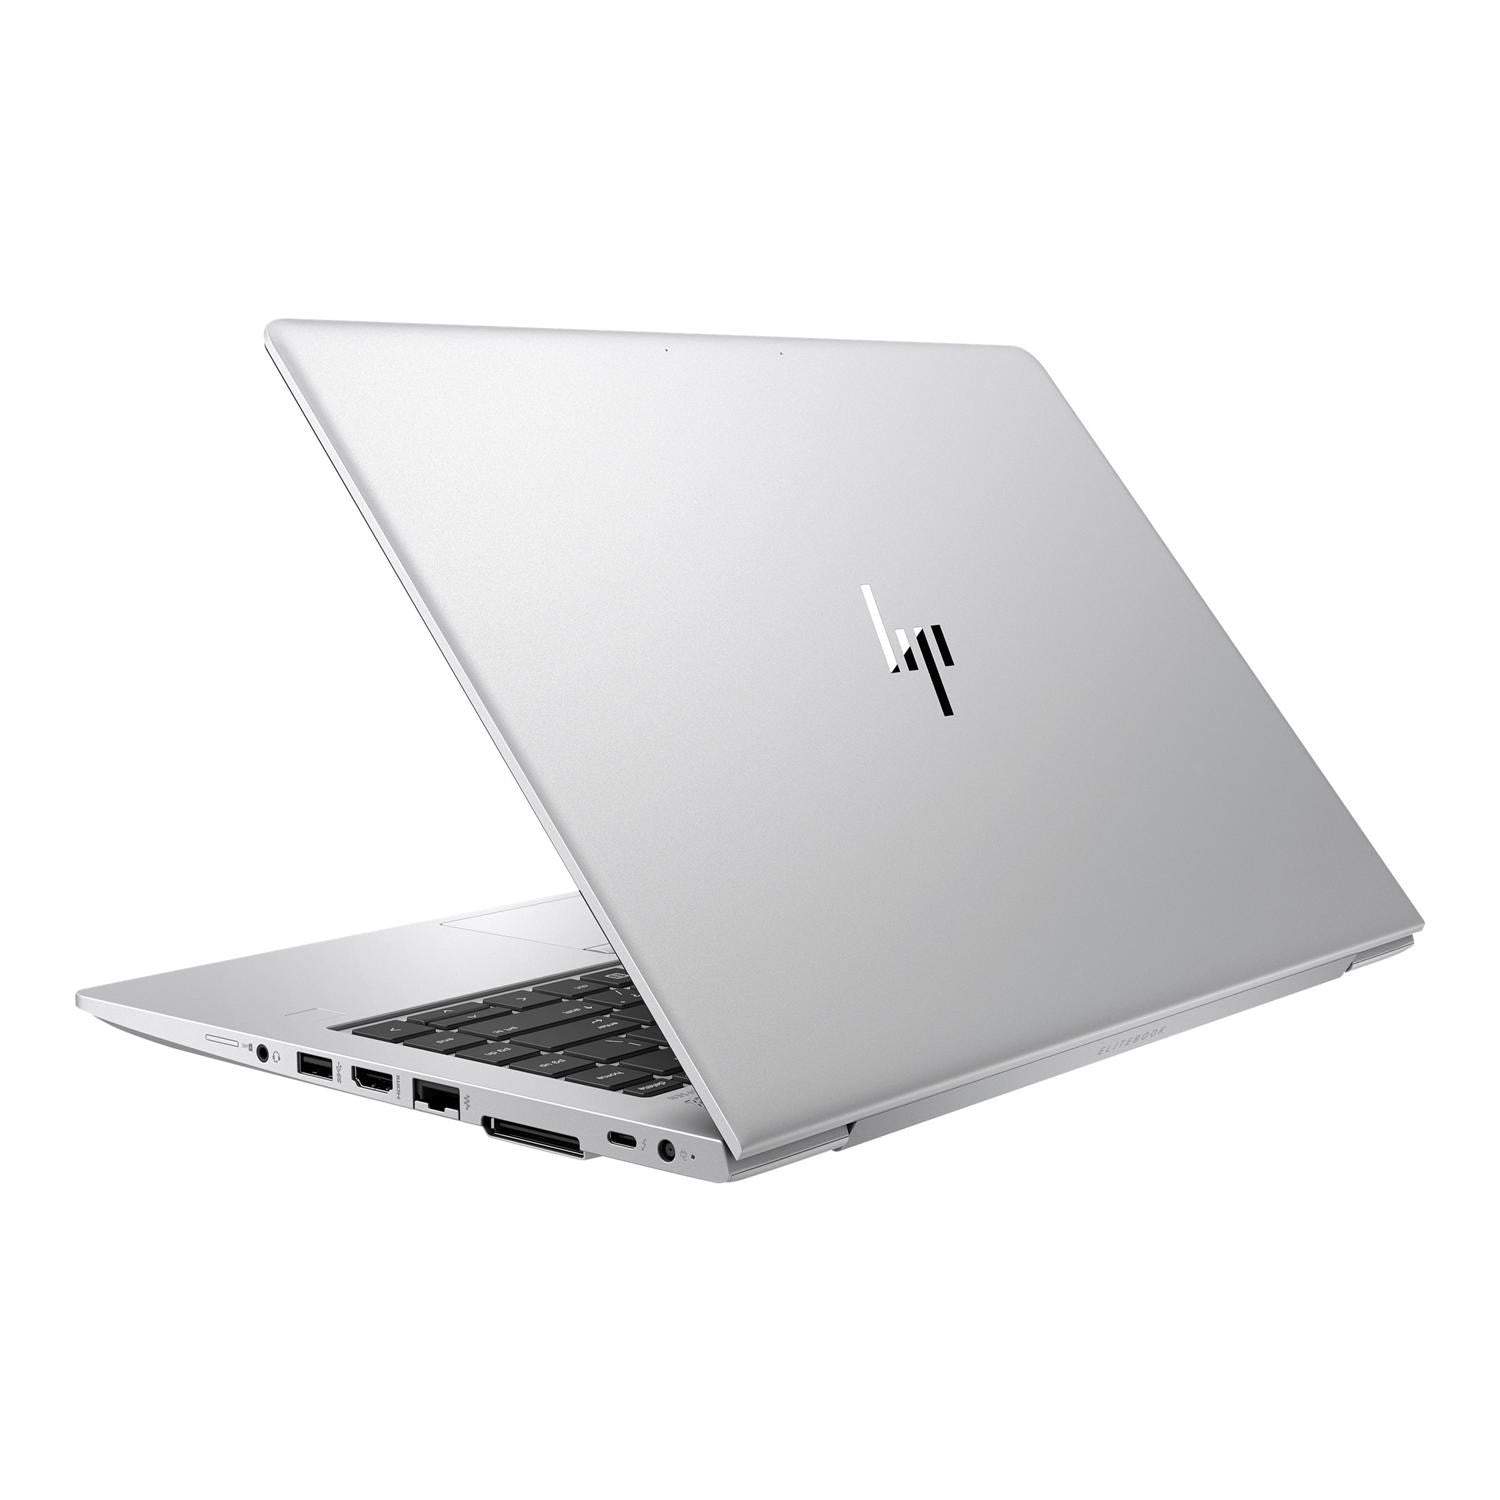 HP EliteBook 840 G6 i5 Touch Screen